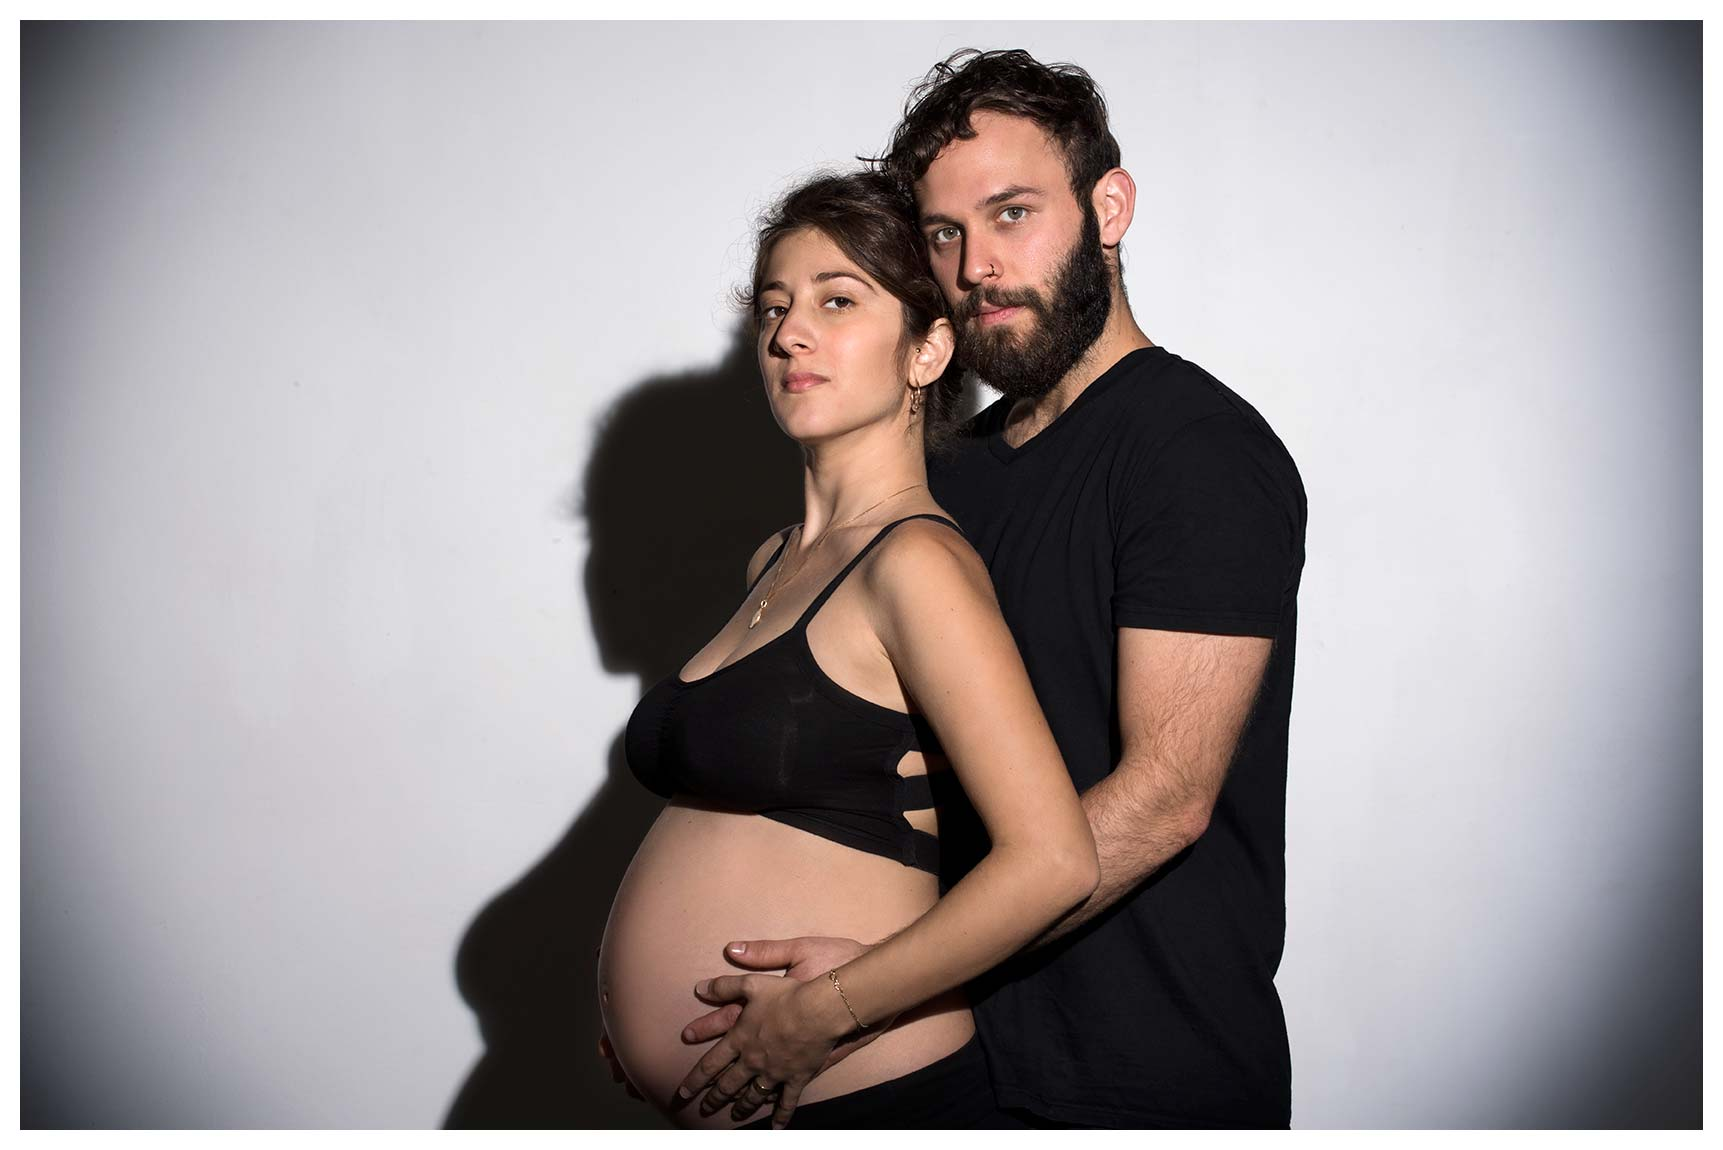 Pregnancy photos in the studio